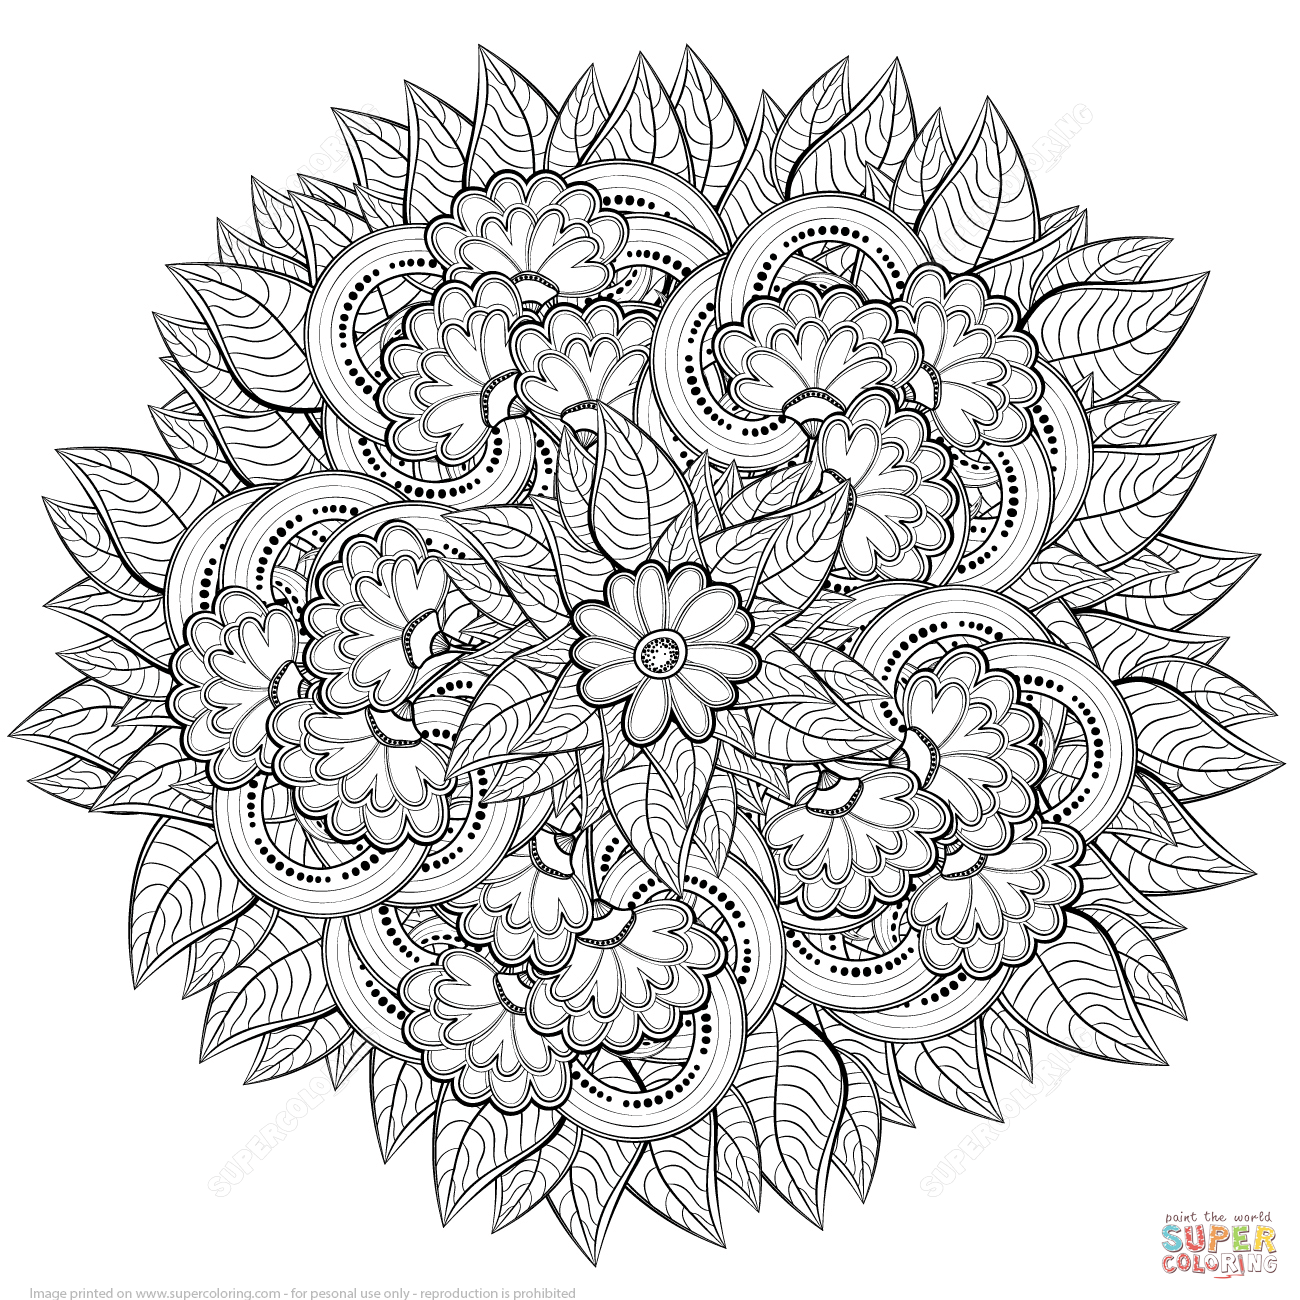 free zen coloring pages free coloring page coloring adult zen anti stress to coloring free zen pages